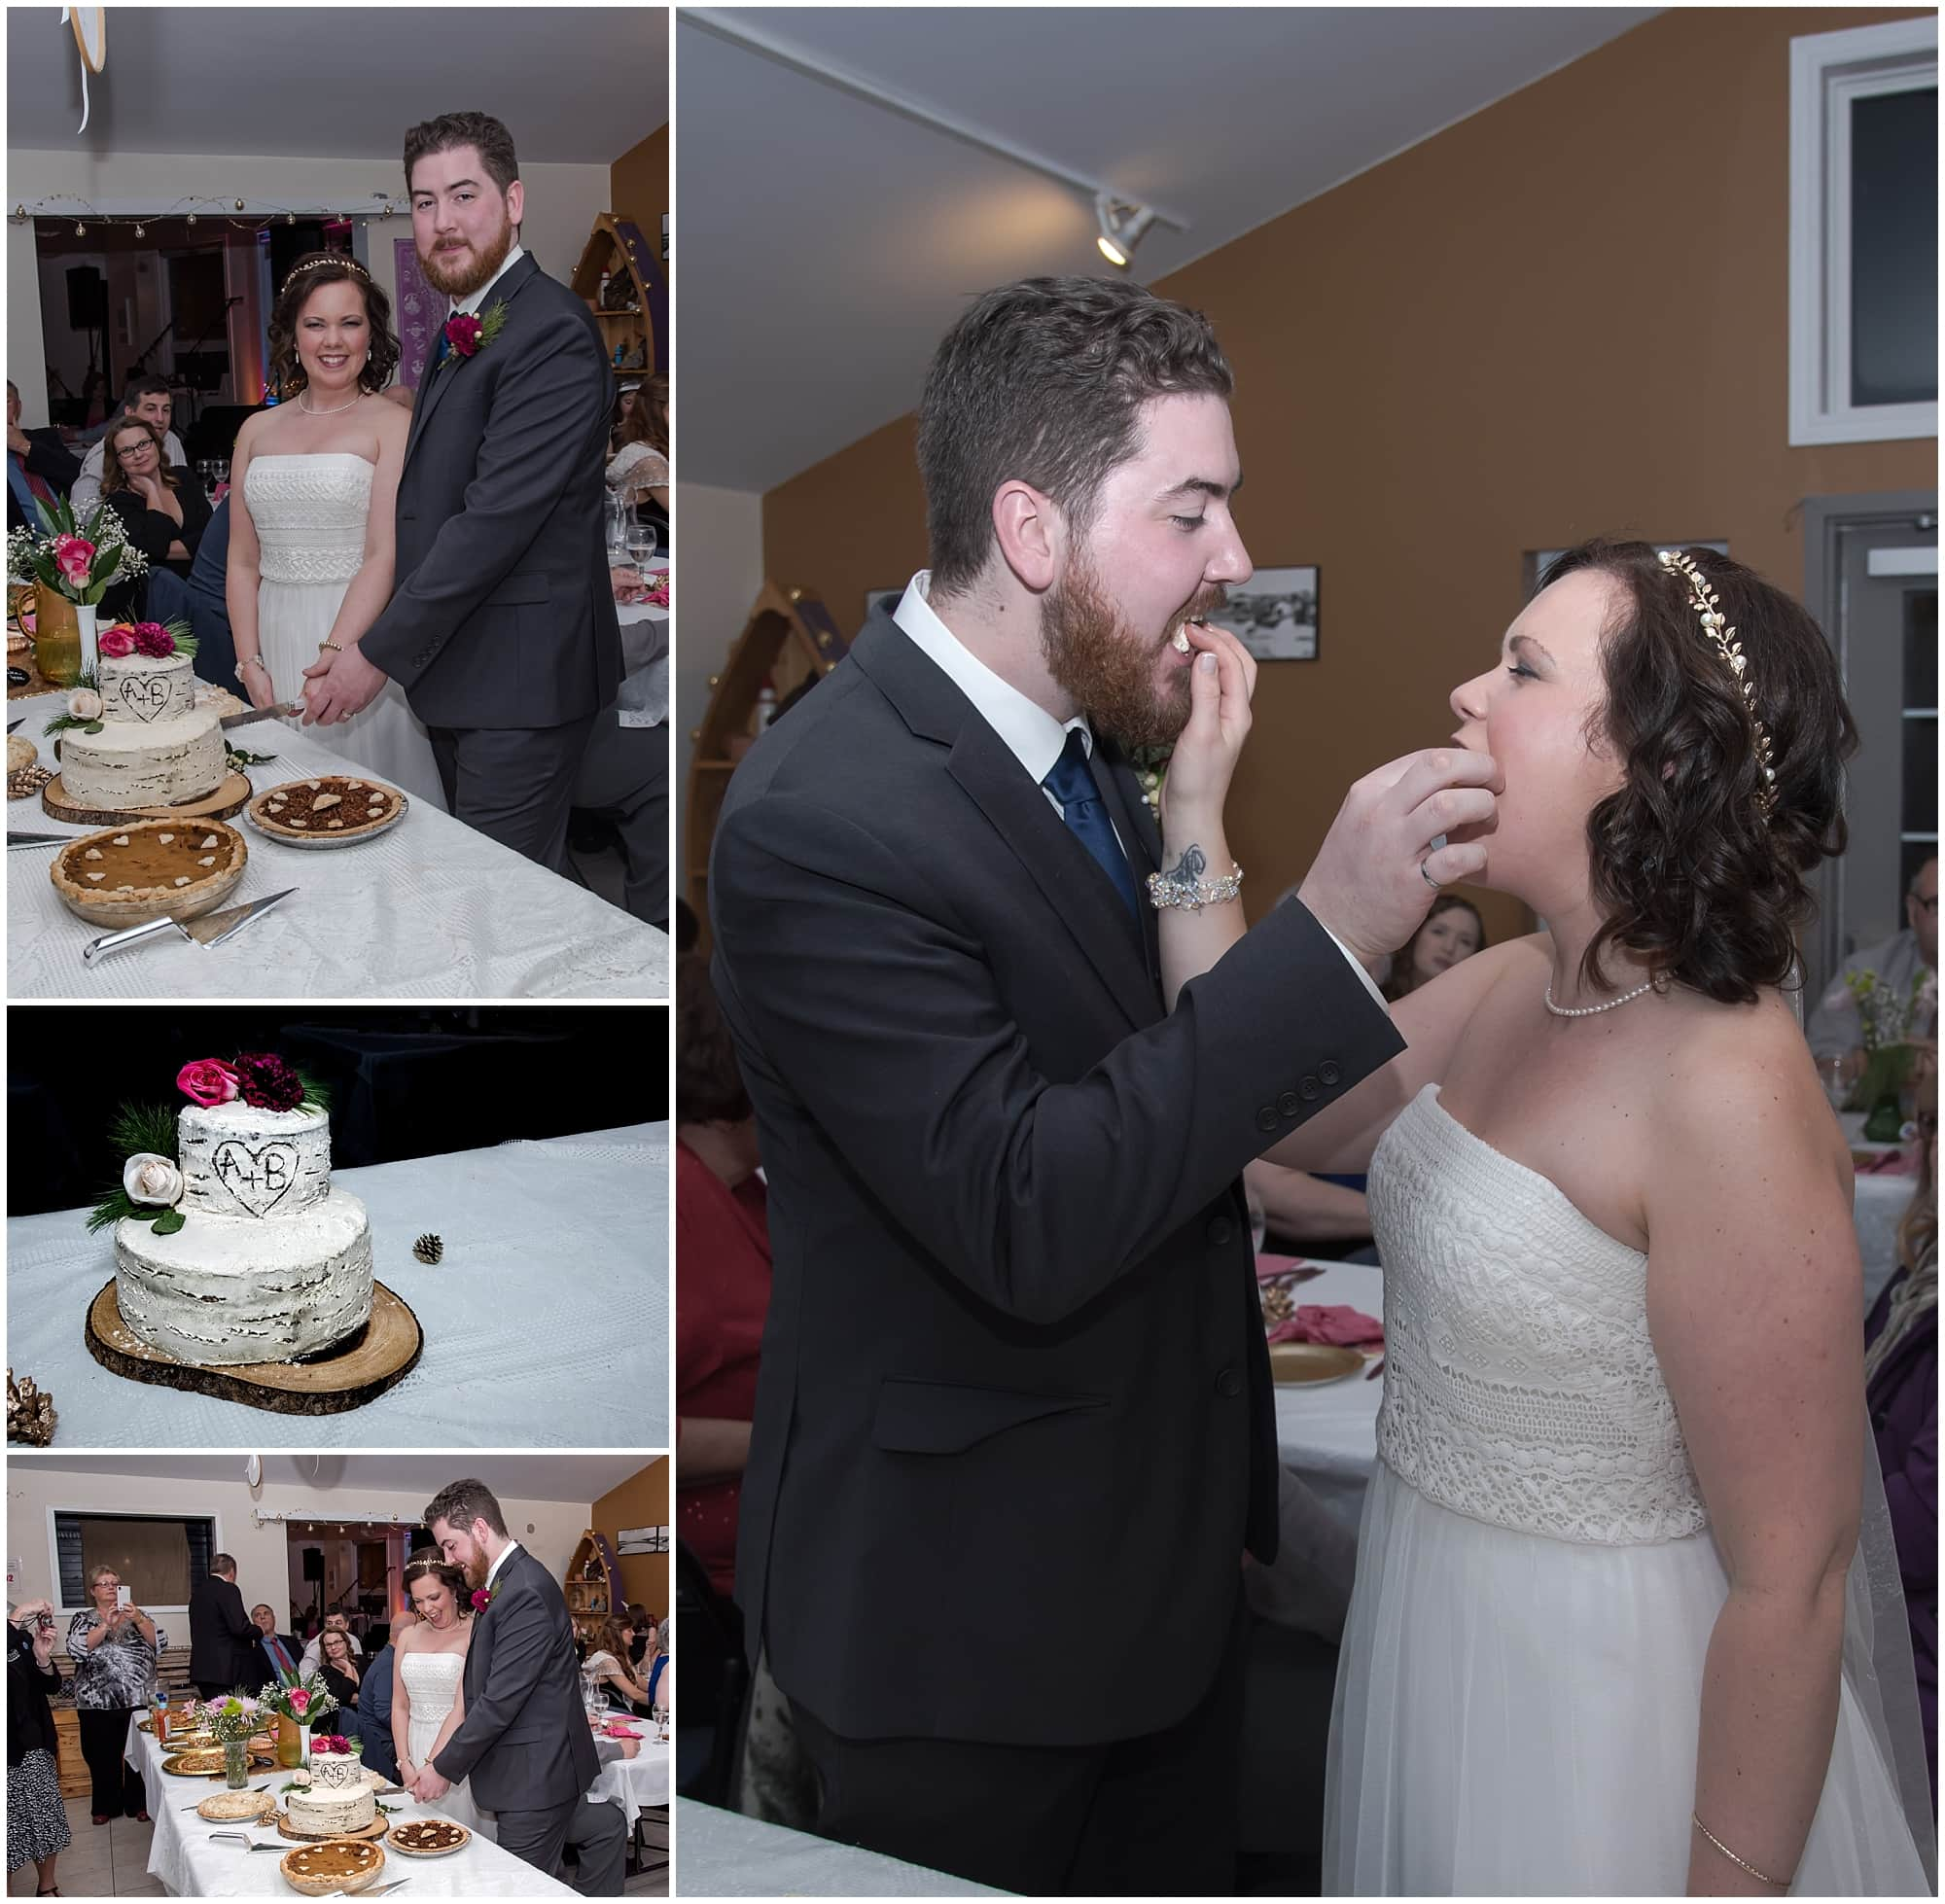 The bride and groom cut the wedding cake and feed each other during their wedding at Fisherman's Cove Heritage Center in eastern Passage NS.